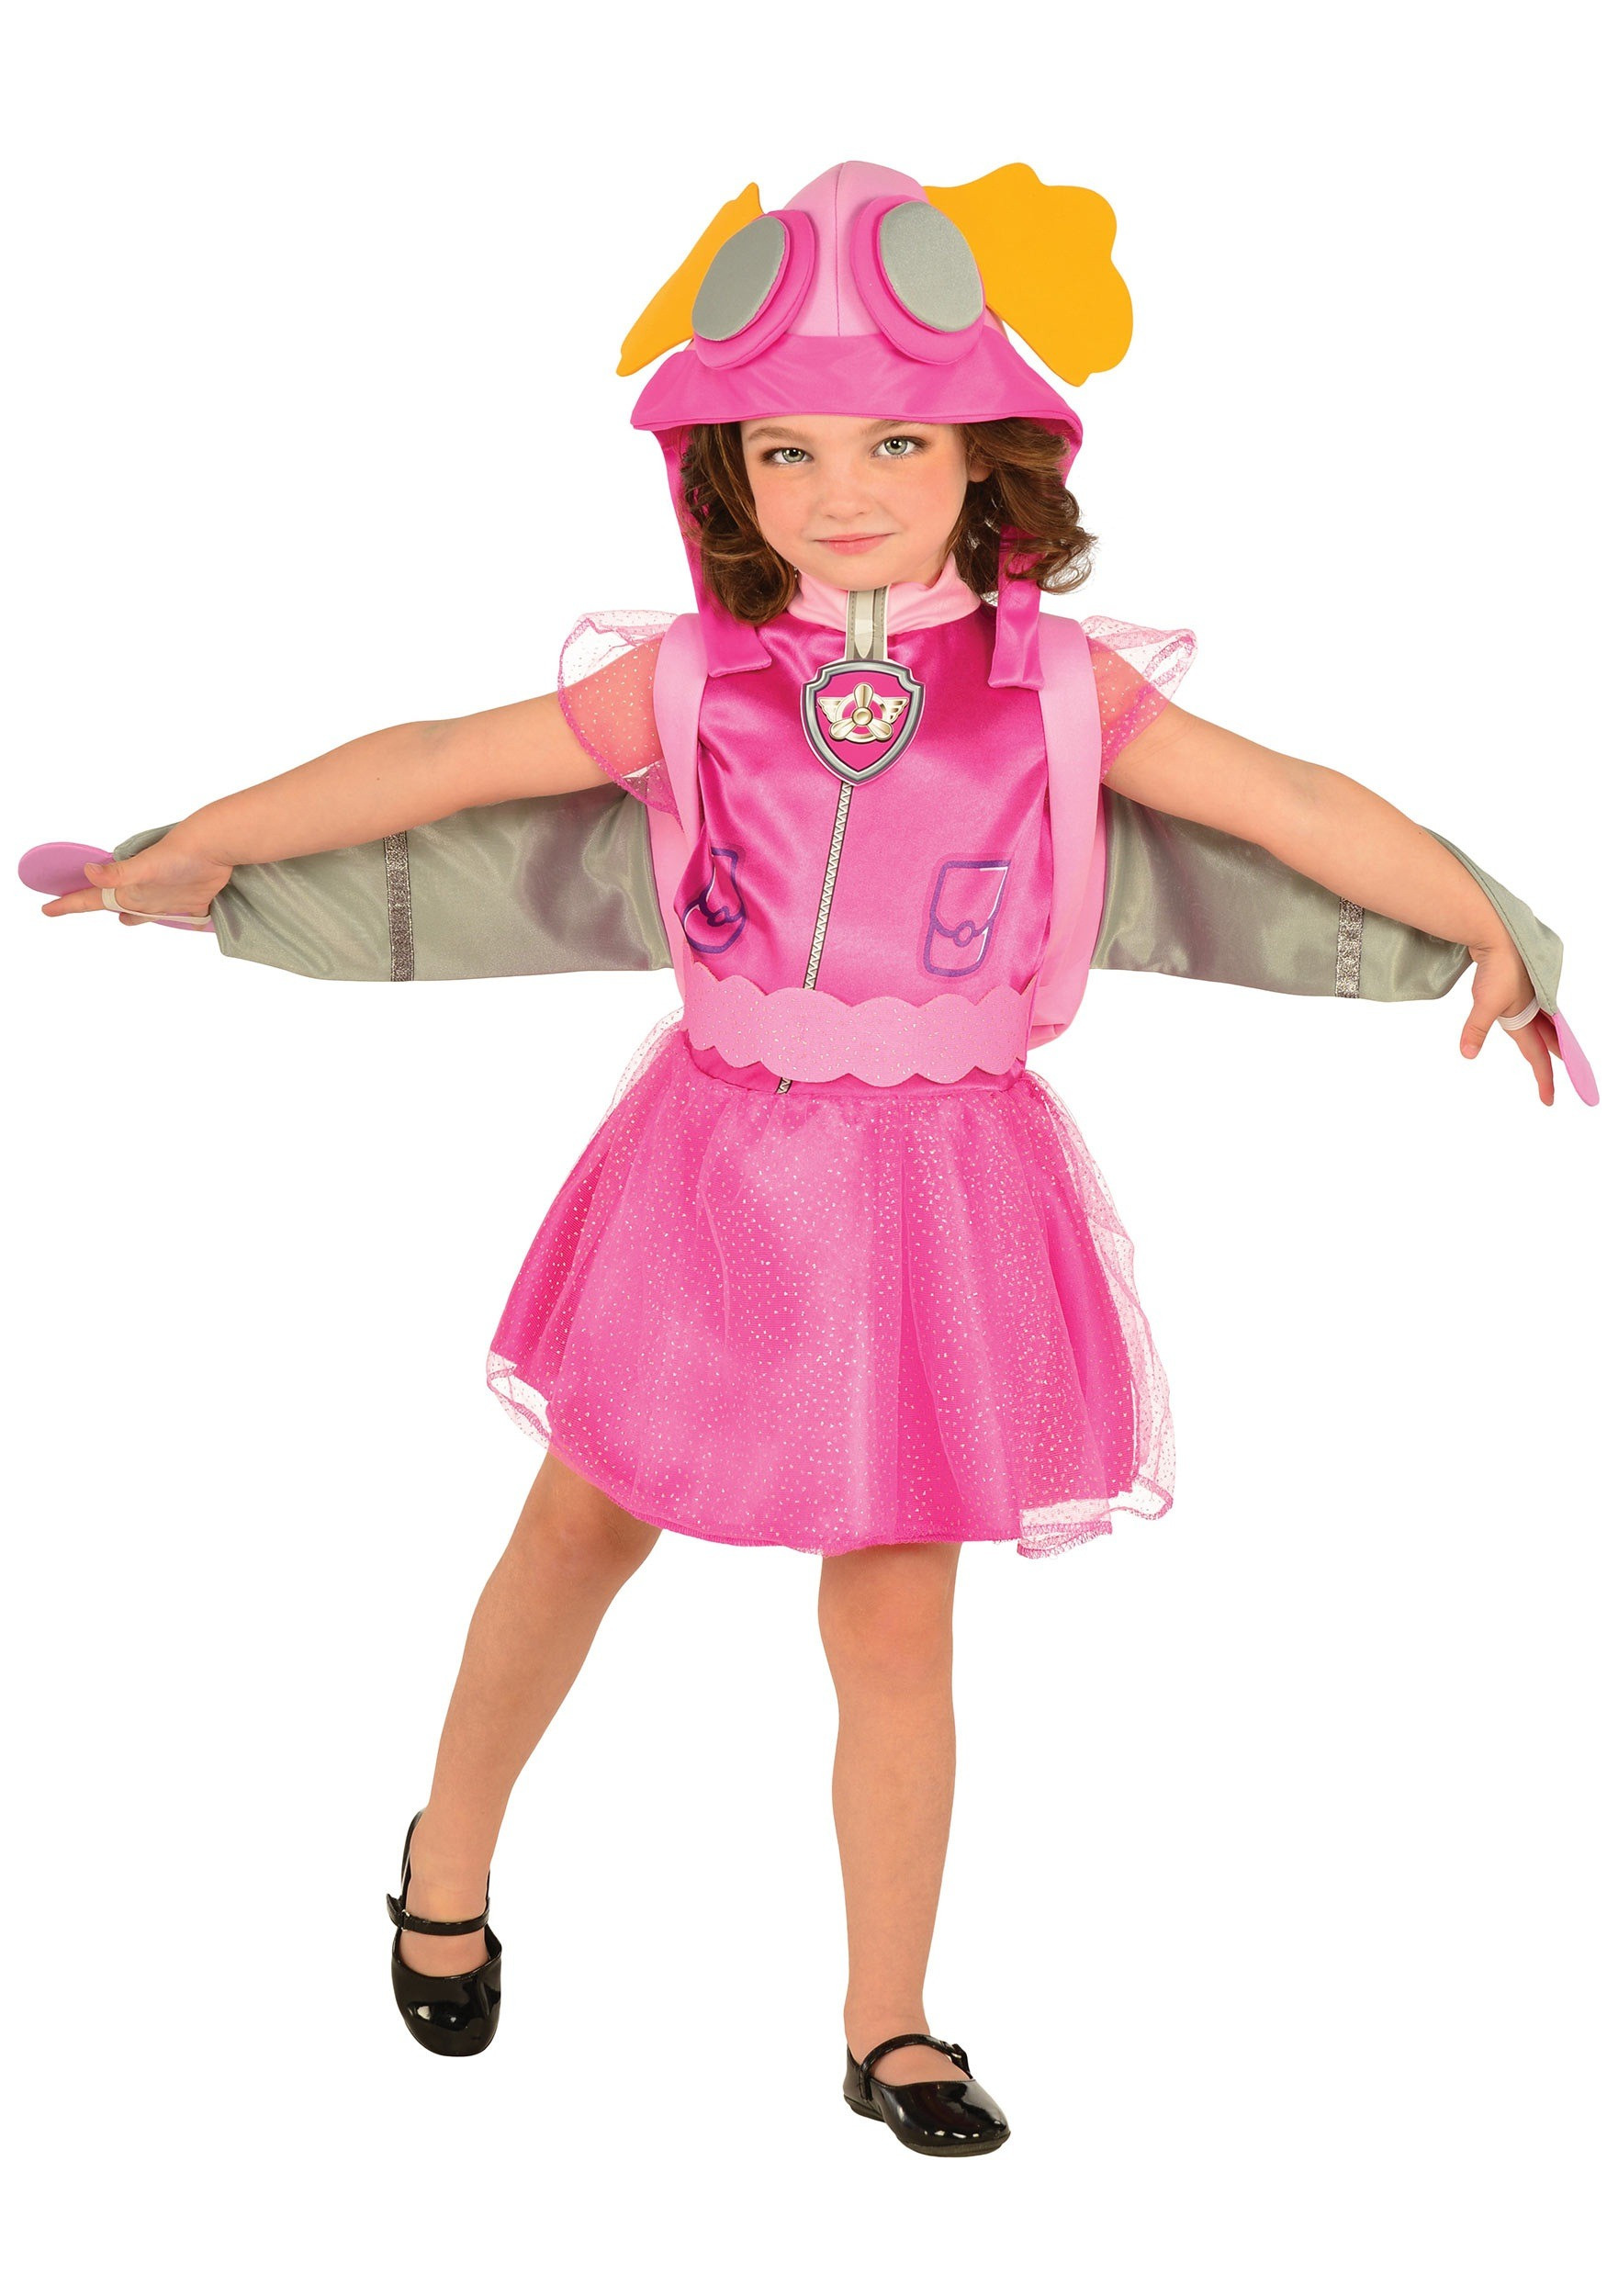 Best ideas about DIY Skye Paw Patrol Costume . Save or Pin Paw Patrol Skye Child Costume Now.